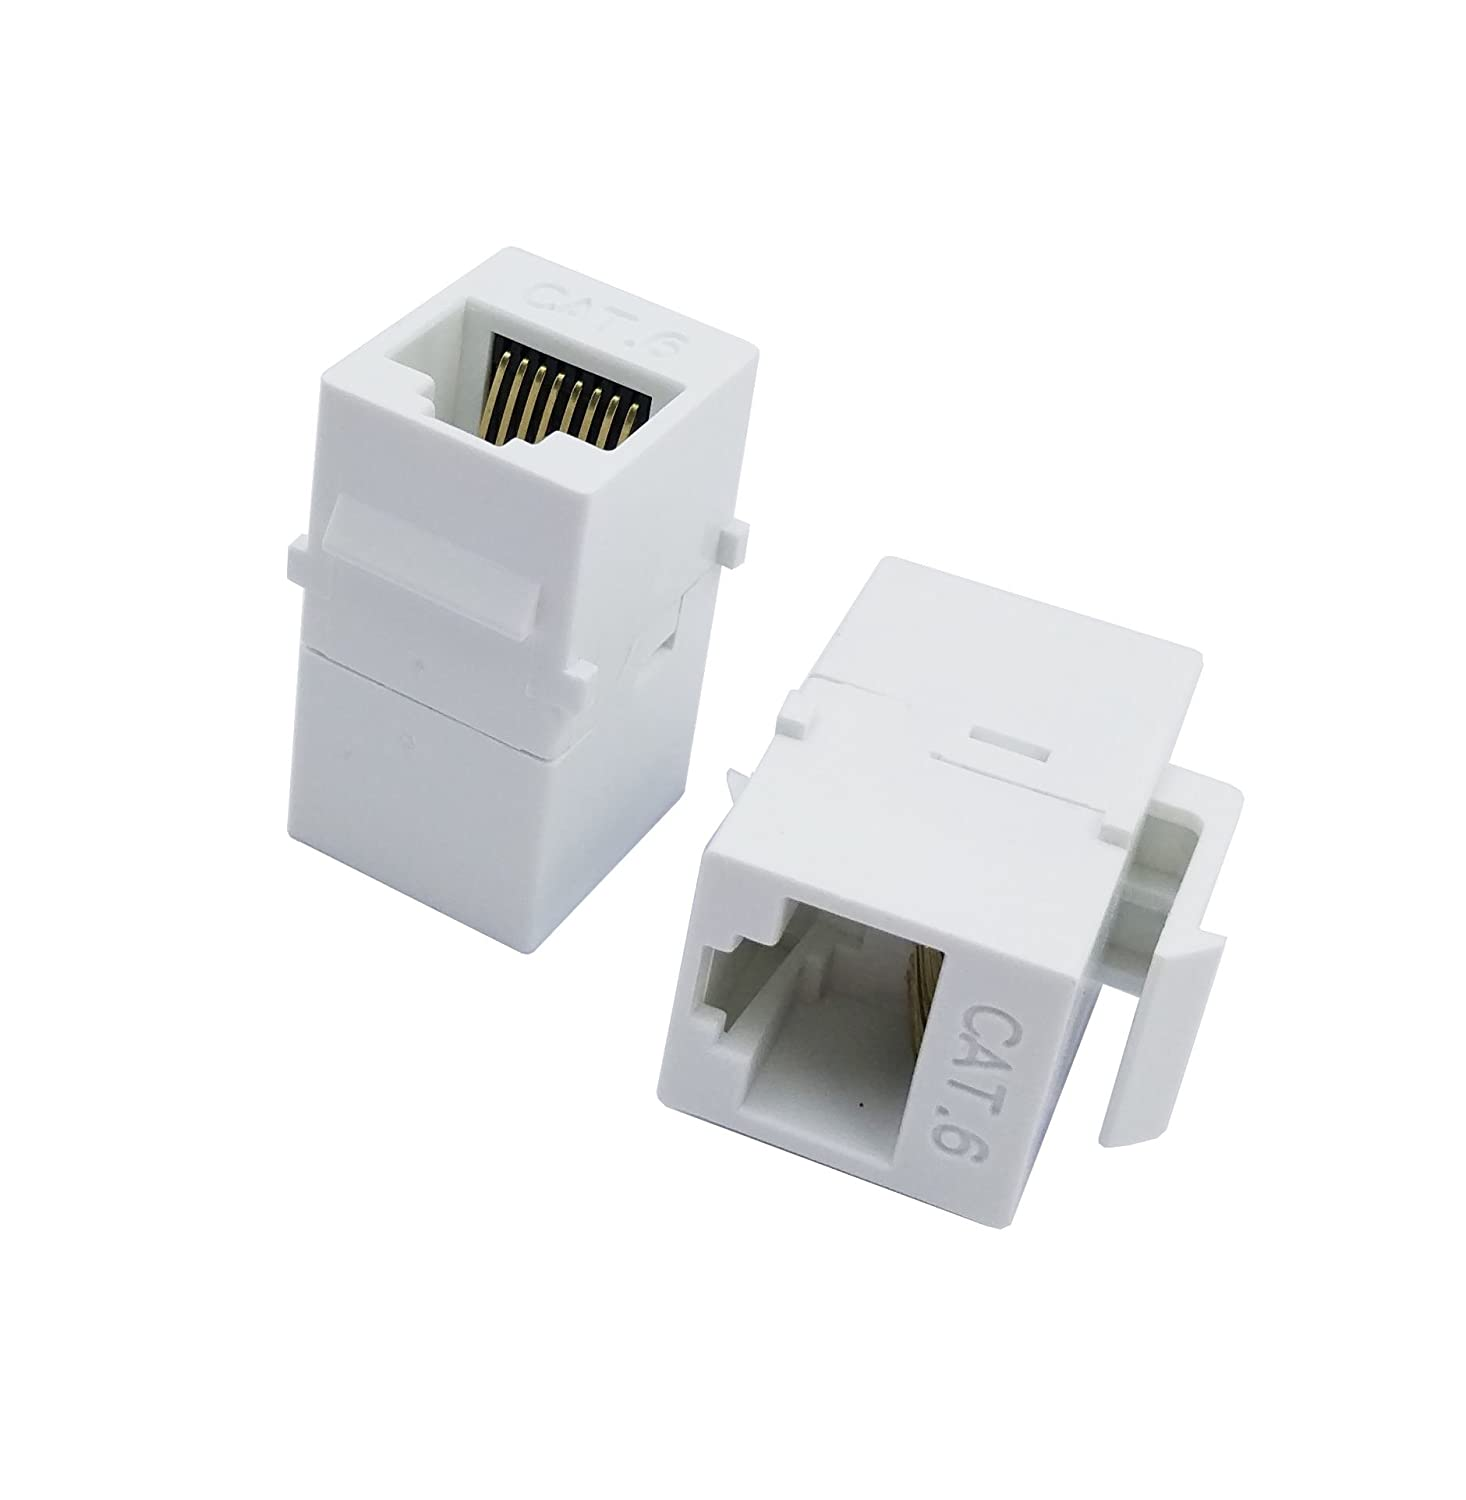 Exuun CAT6 RJ45 Keystone Coupler, White 4328735275 RJ45 Connector CAT6 Female to Female Ethernet Adapter CAT 6//5e//5 Double Jack Ethernet Connector 8P8C Extender Network Cable Inline Modular 2-Pack